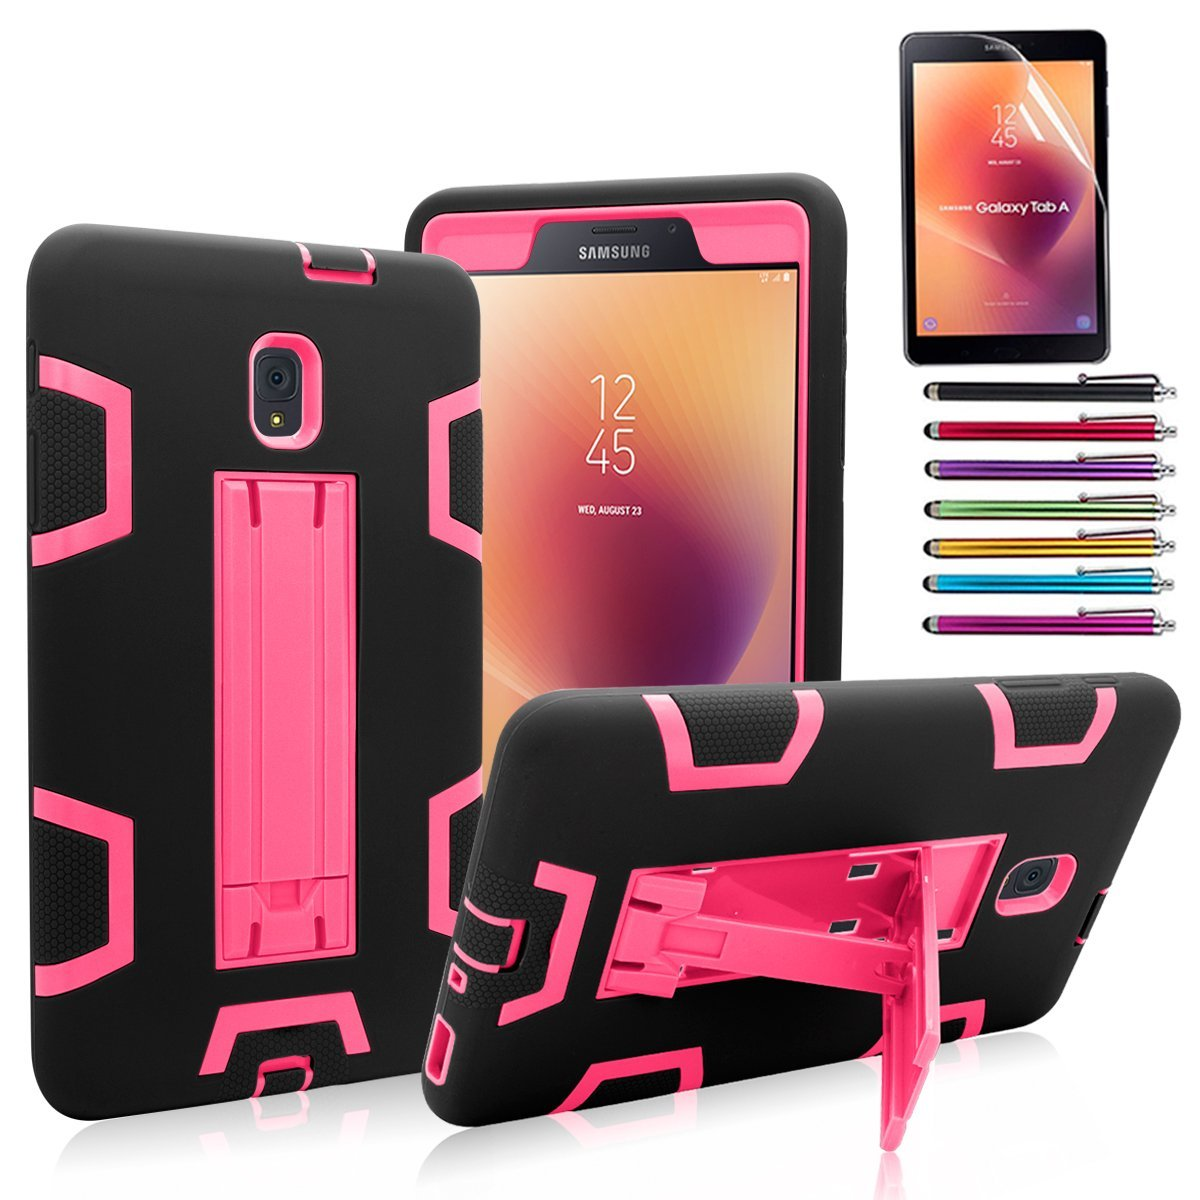 Galaxy Tab A 8.0 Case 2017,Mignova Heavy Duty rugged Hybrid Protective Case with Build In Kickstand For Galaxy Tab A 8.0 SM-T380/T385 (2017) + Screen Protector Film and Stylus Pen (Black)